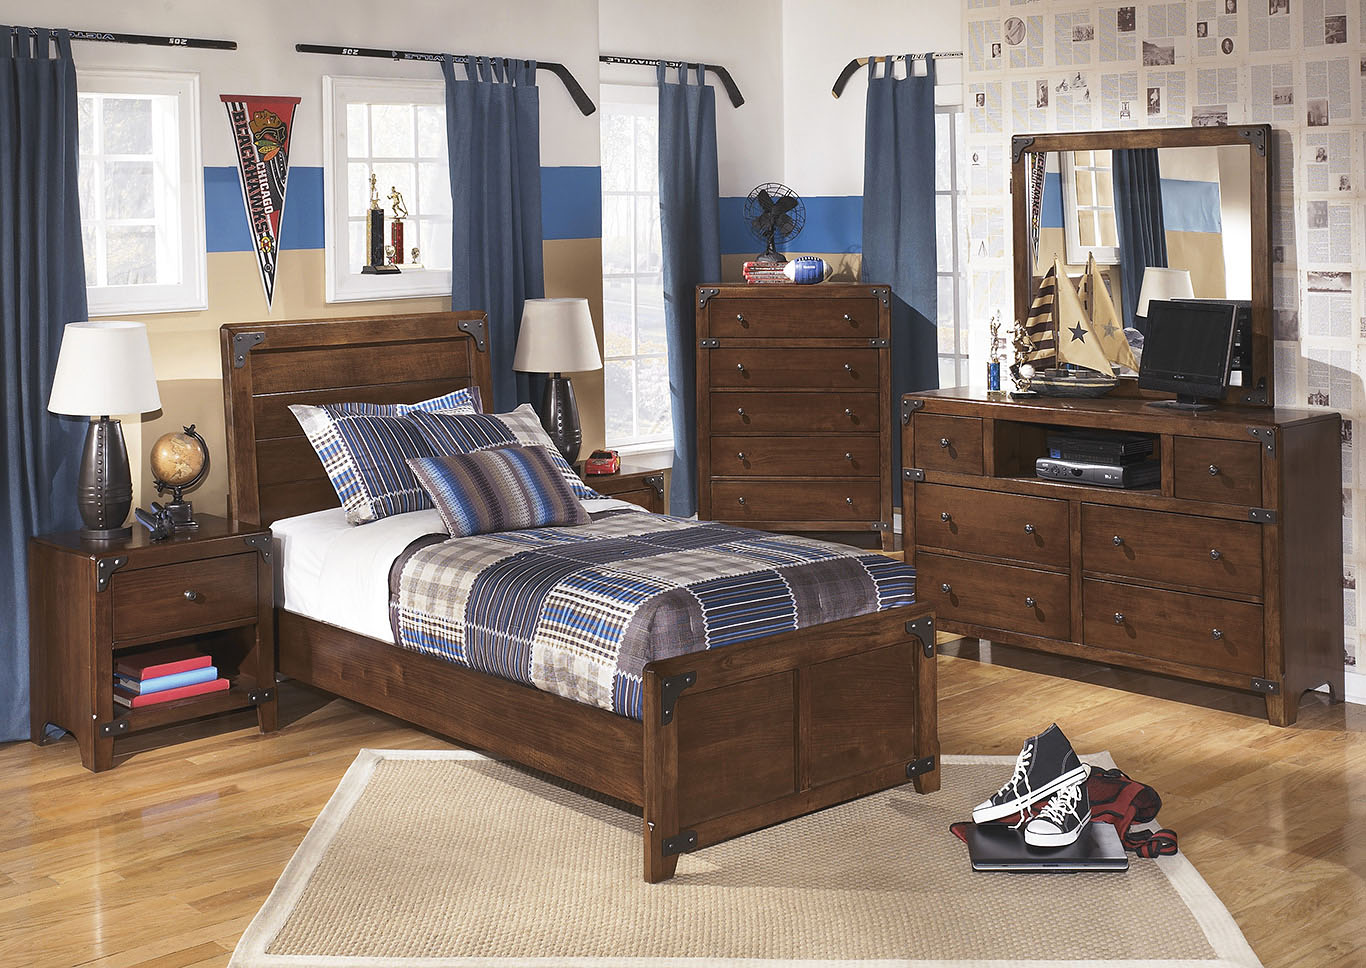 Delburne Twin Panel Bed w/Dresser, Mirror & Nightstand,Signature Design By Ashley